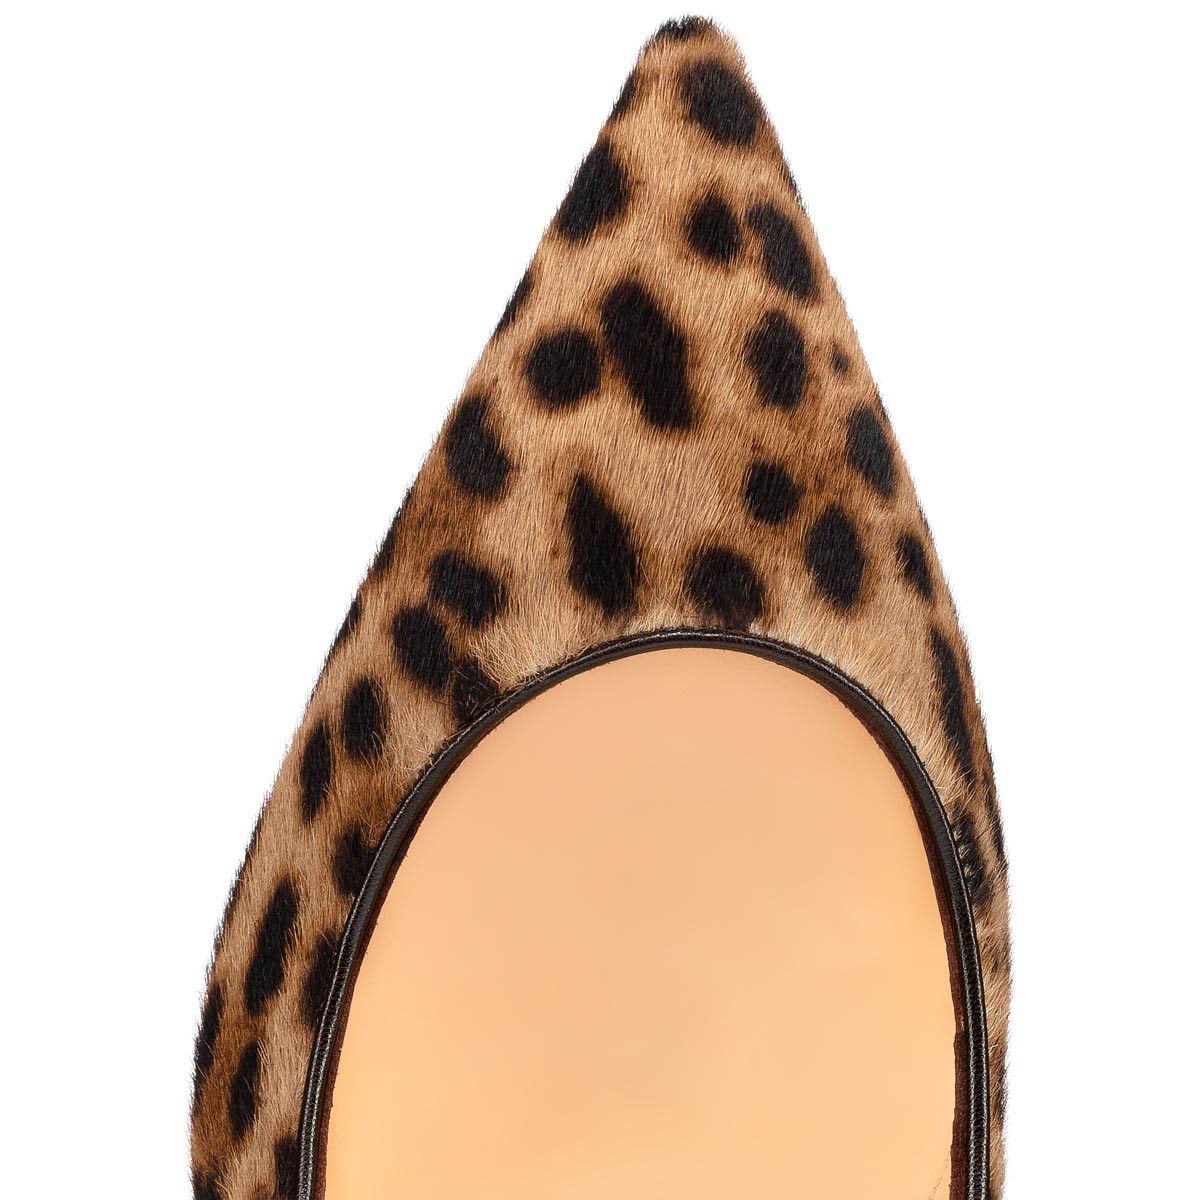 Shoes - Maastricht - Christian Louboutin